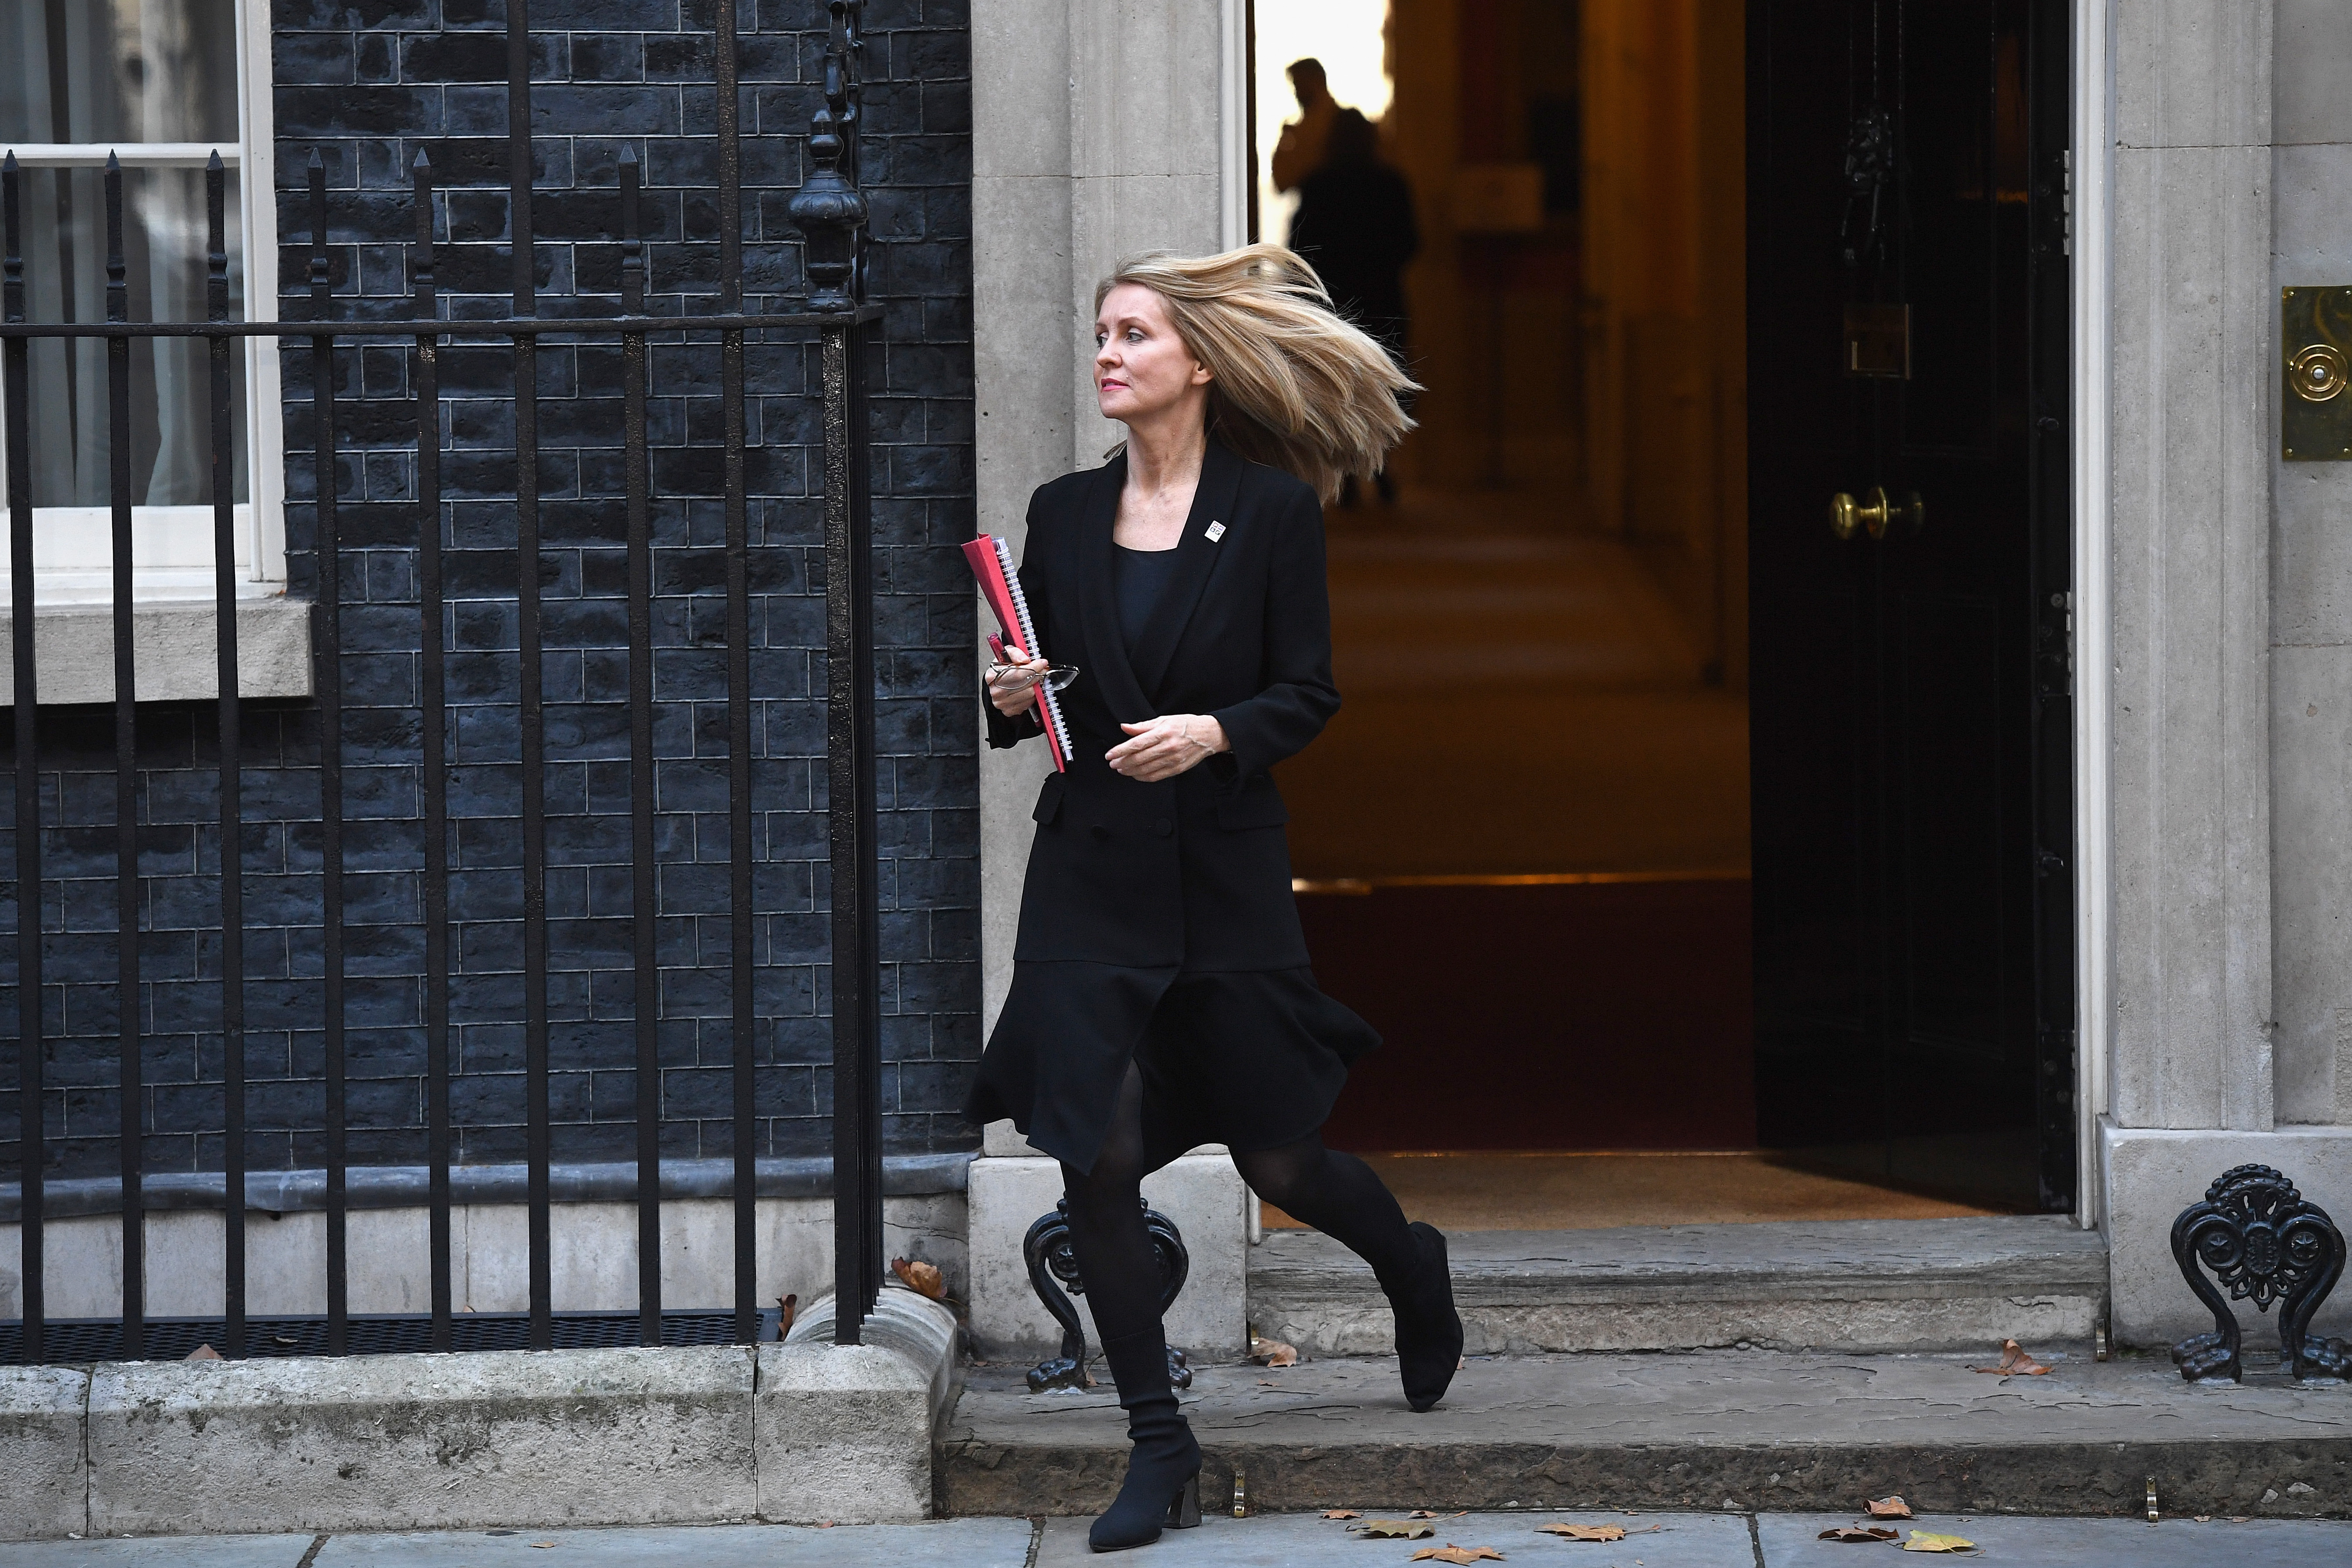 LONDON, ENGLAND - NOVEMBER 13: Work and Pensions Secretary Esther McVey leaves 10 Downing Street on November 13, 2018 in London, England. (Photo by Leon Neal/Getty Images)